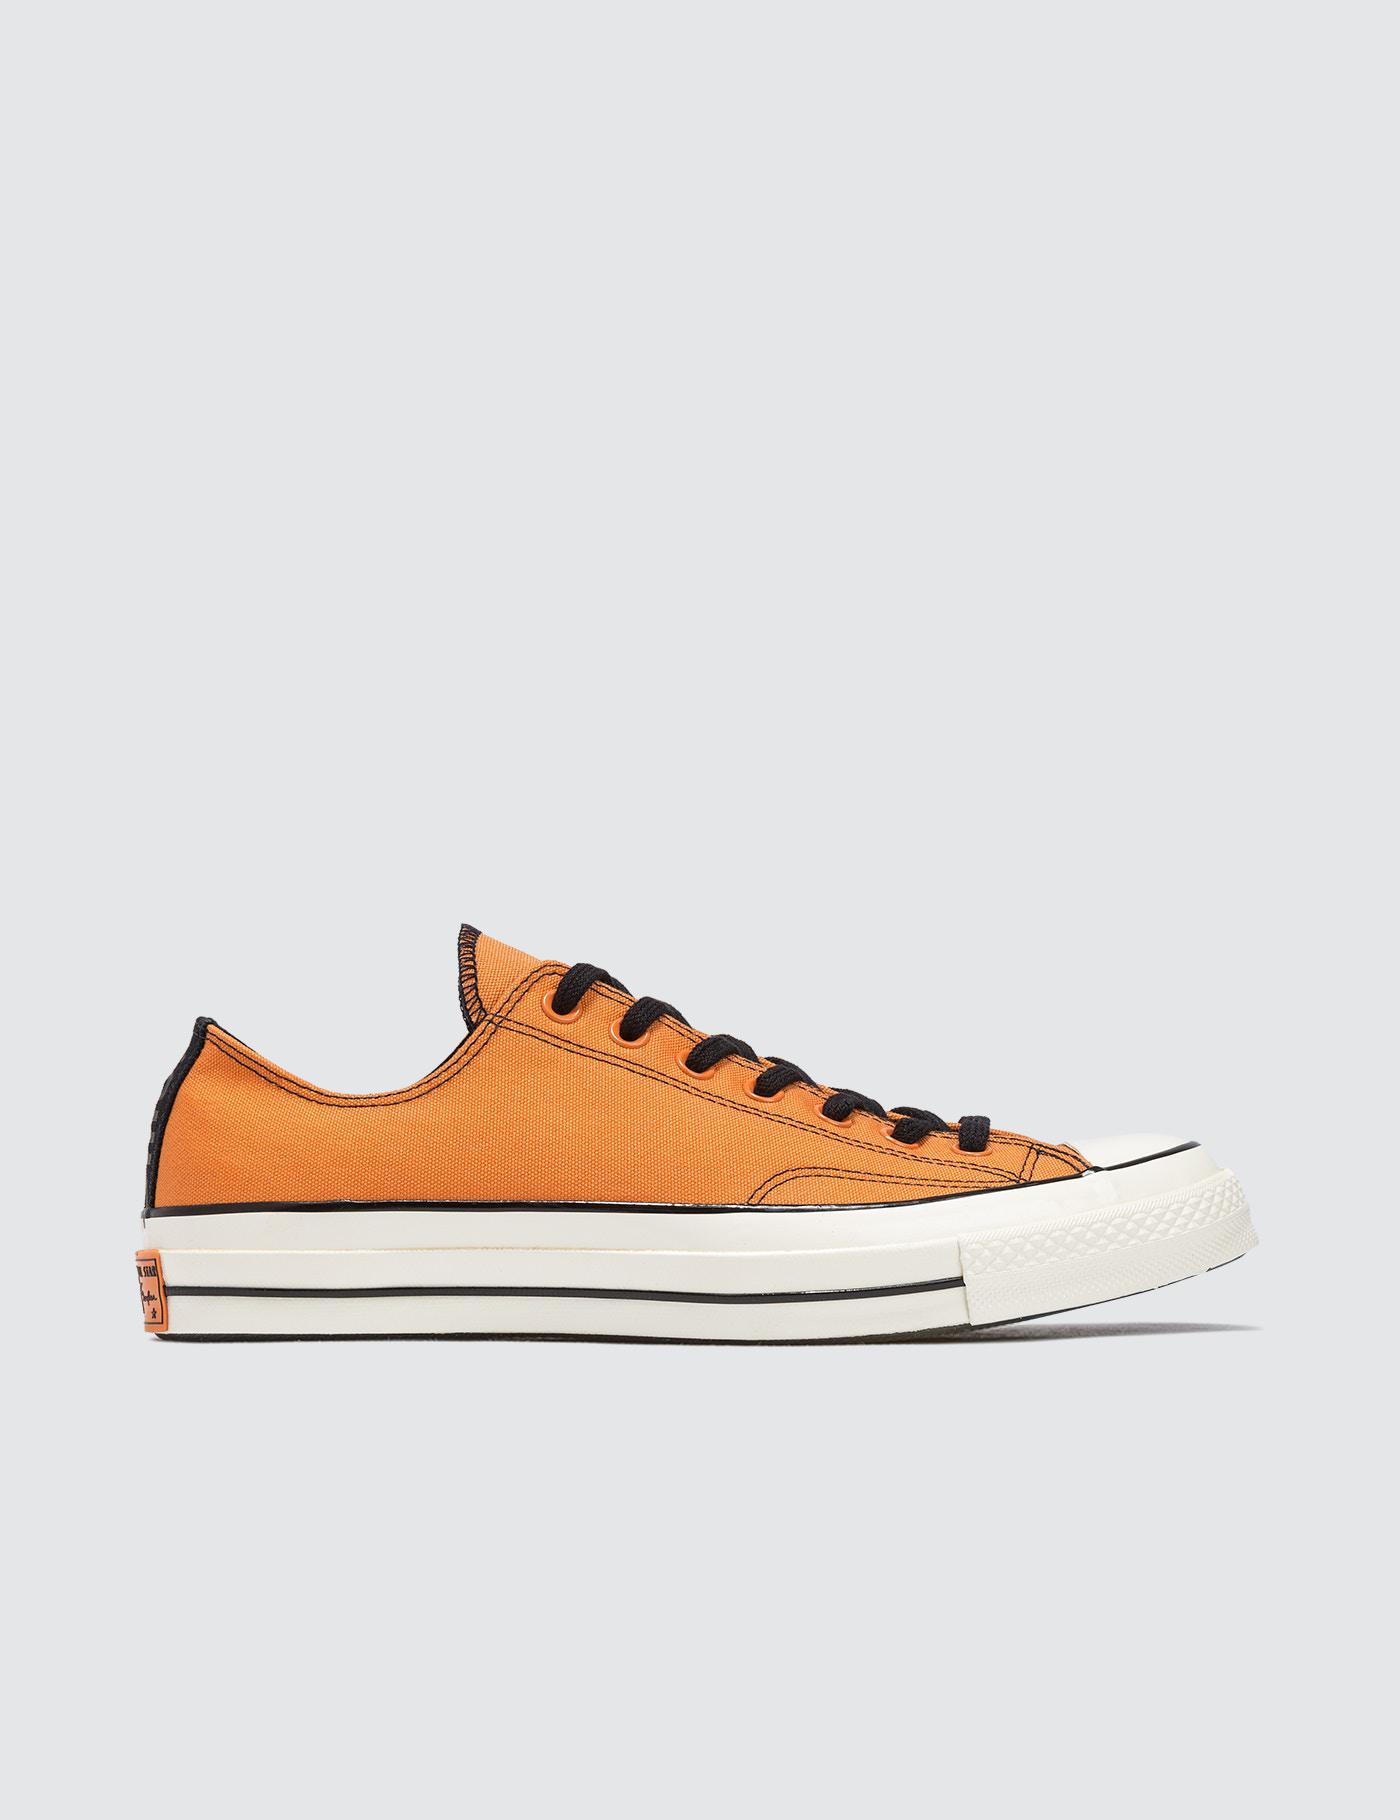 f85aa6ad69c1 Lyst - Converse X Vince Staples Chuck Taylor All Star 70 Ox in ...